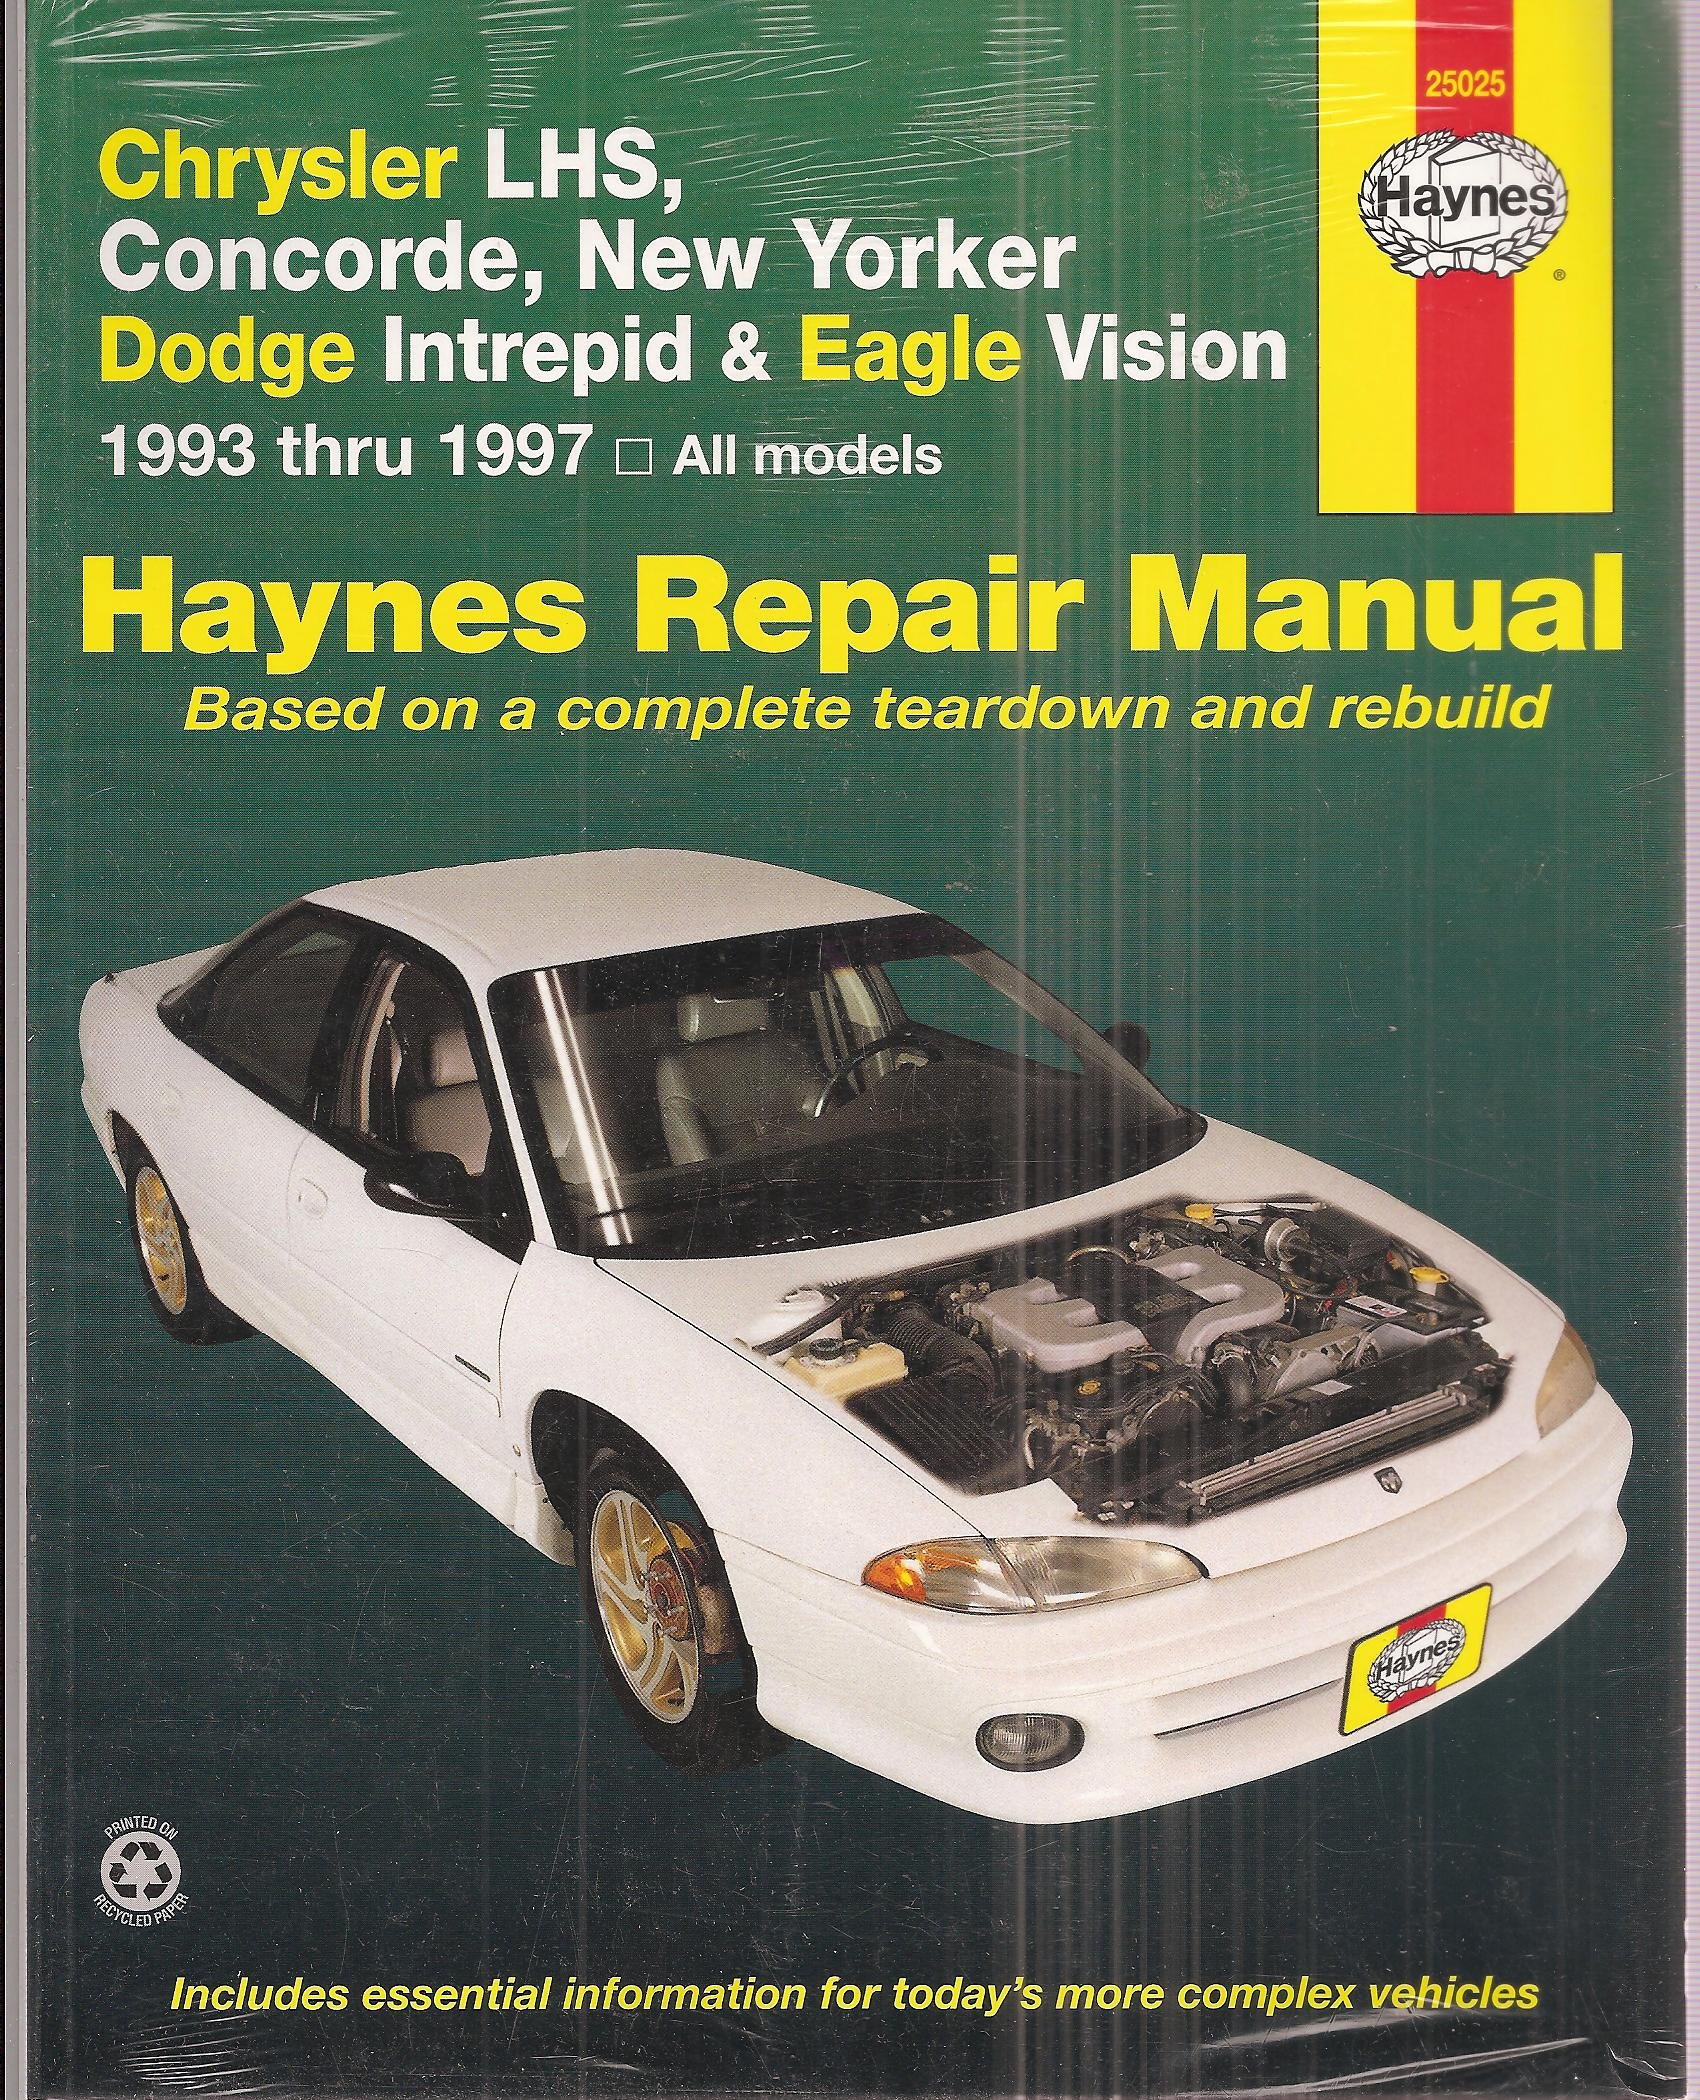 Haynes Repair Manual: Chrysler LHS, Concorde, New Yorker - Dodge Intrepid  and Eagle Vision, 1993 Thru 1997, All Models: Unknown: Amazon.com: Books